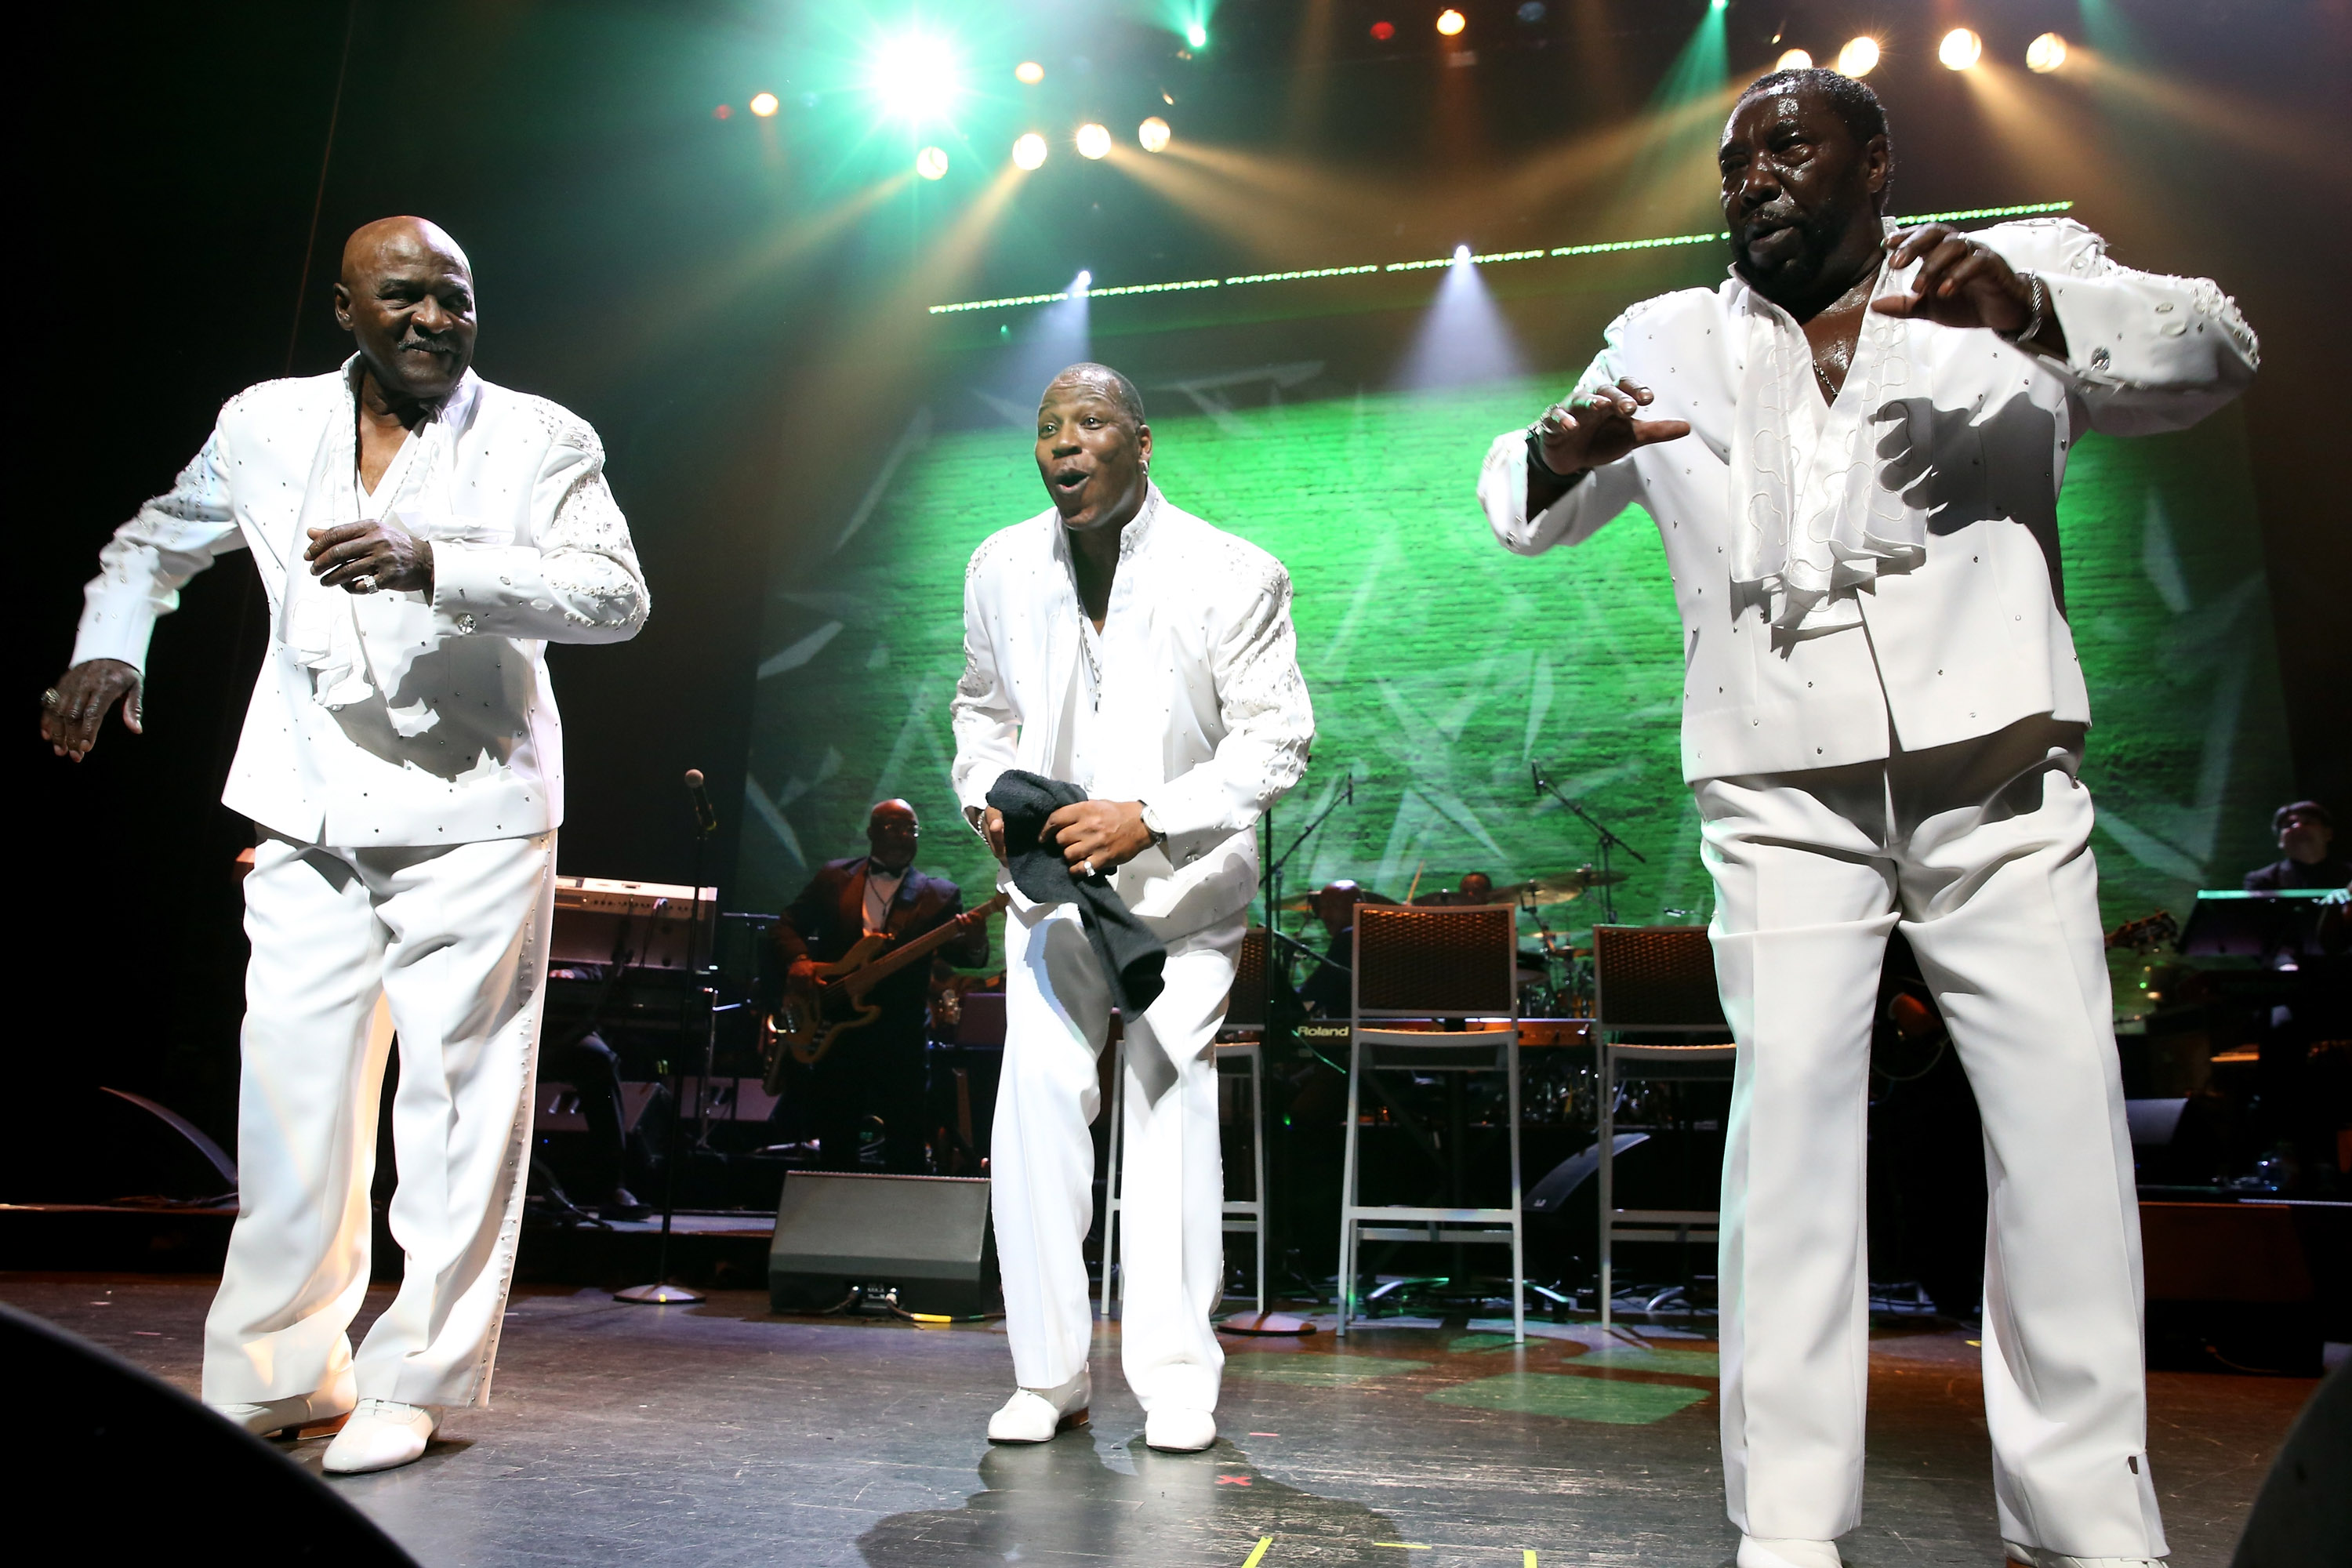 NEW YORK, NY - JUNE 13: Walter Williams, Eric Grant and Eddie Levert of The O'Jays preform during Prince Walk of Fame Induction and 2016 Spring Gala at The Apollo Theater on June 13, 2016 in New York City. (Photo by Shahar Azran/WireImage)